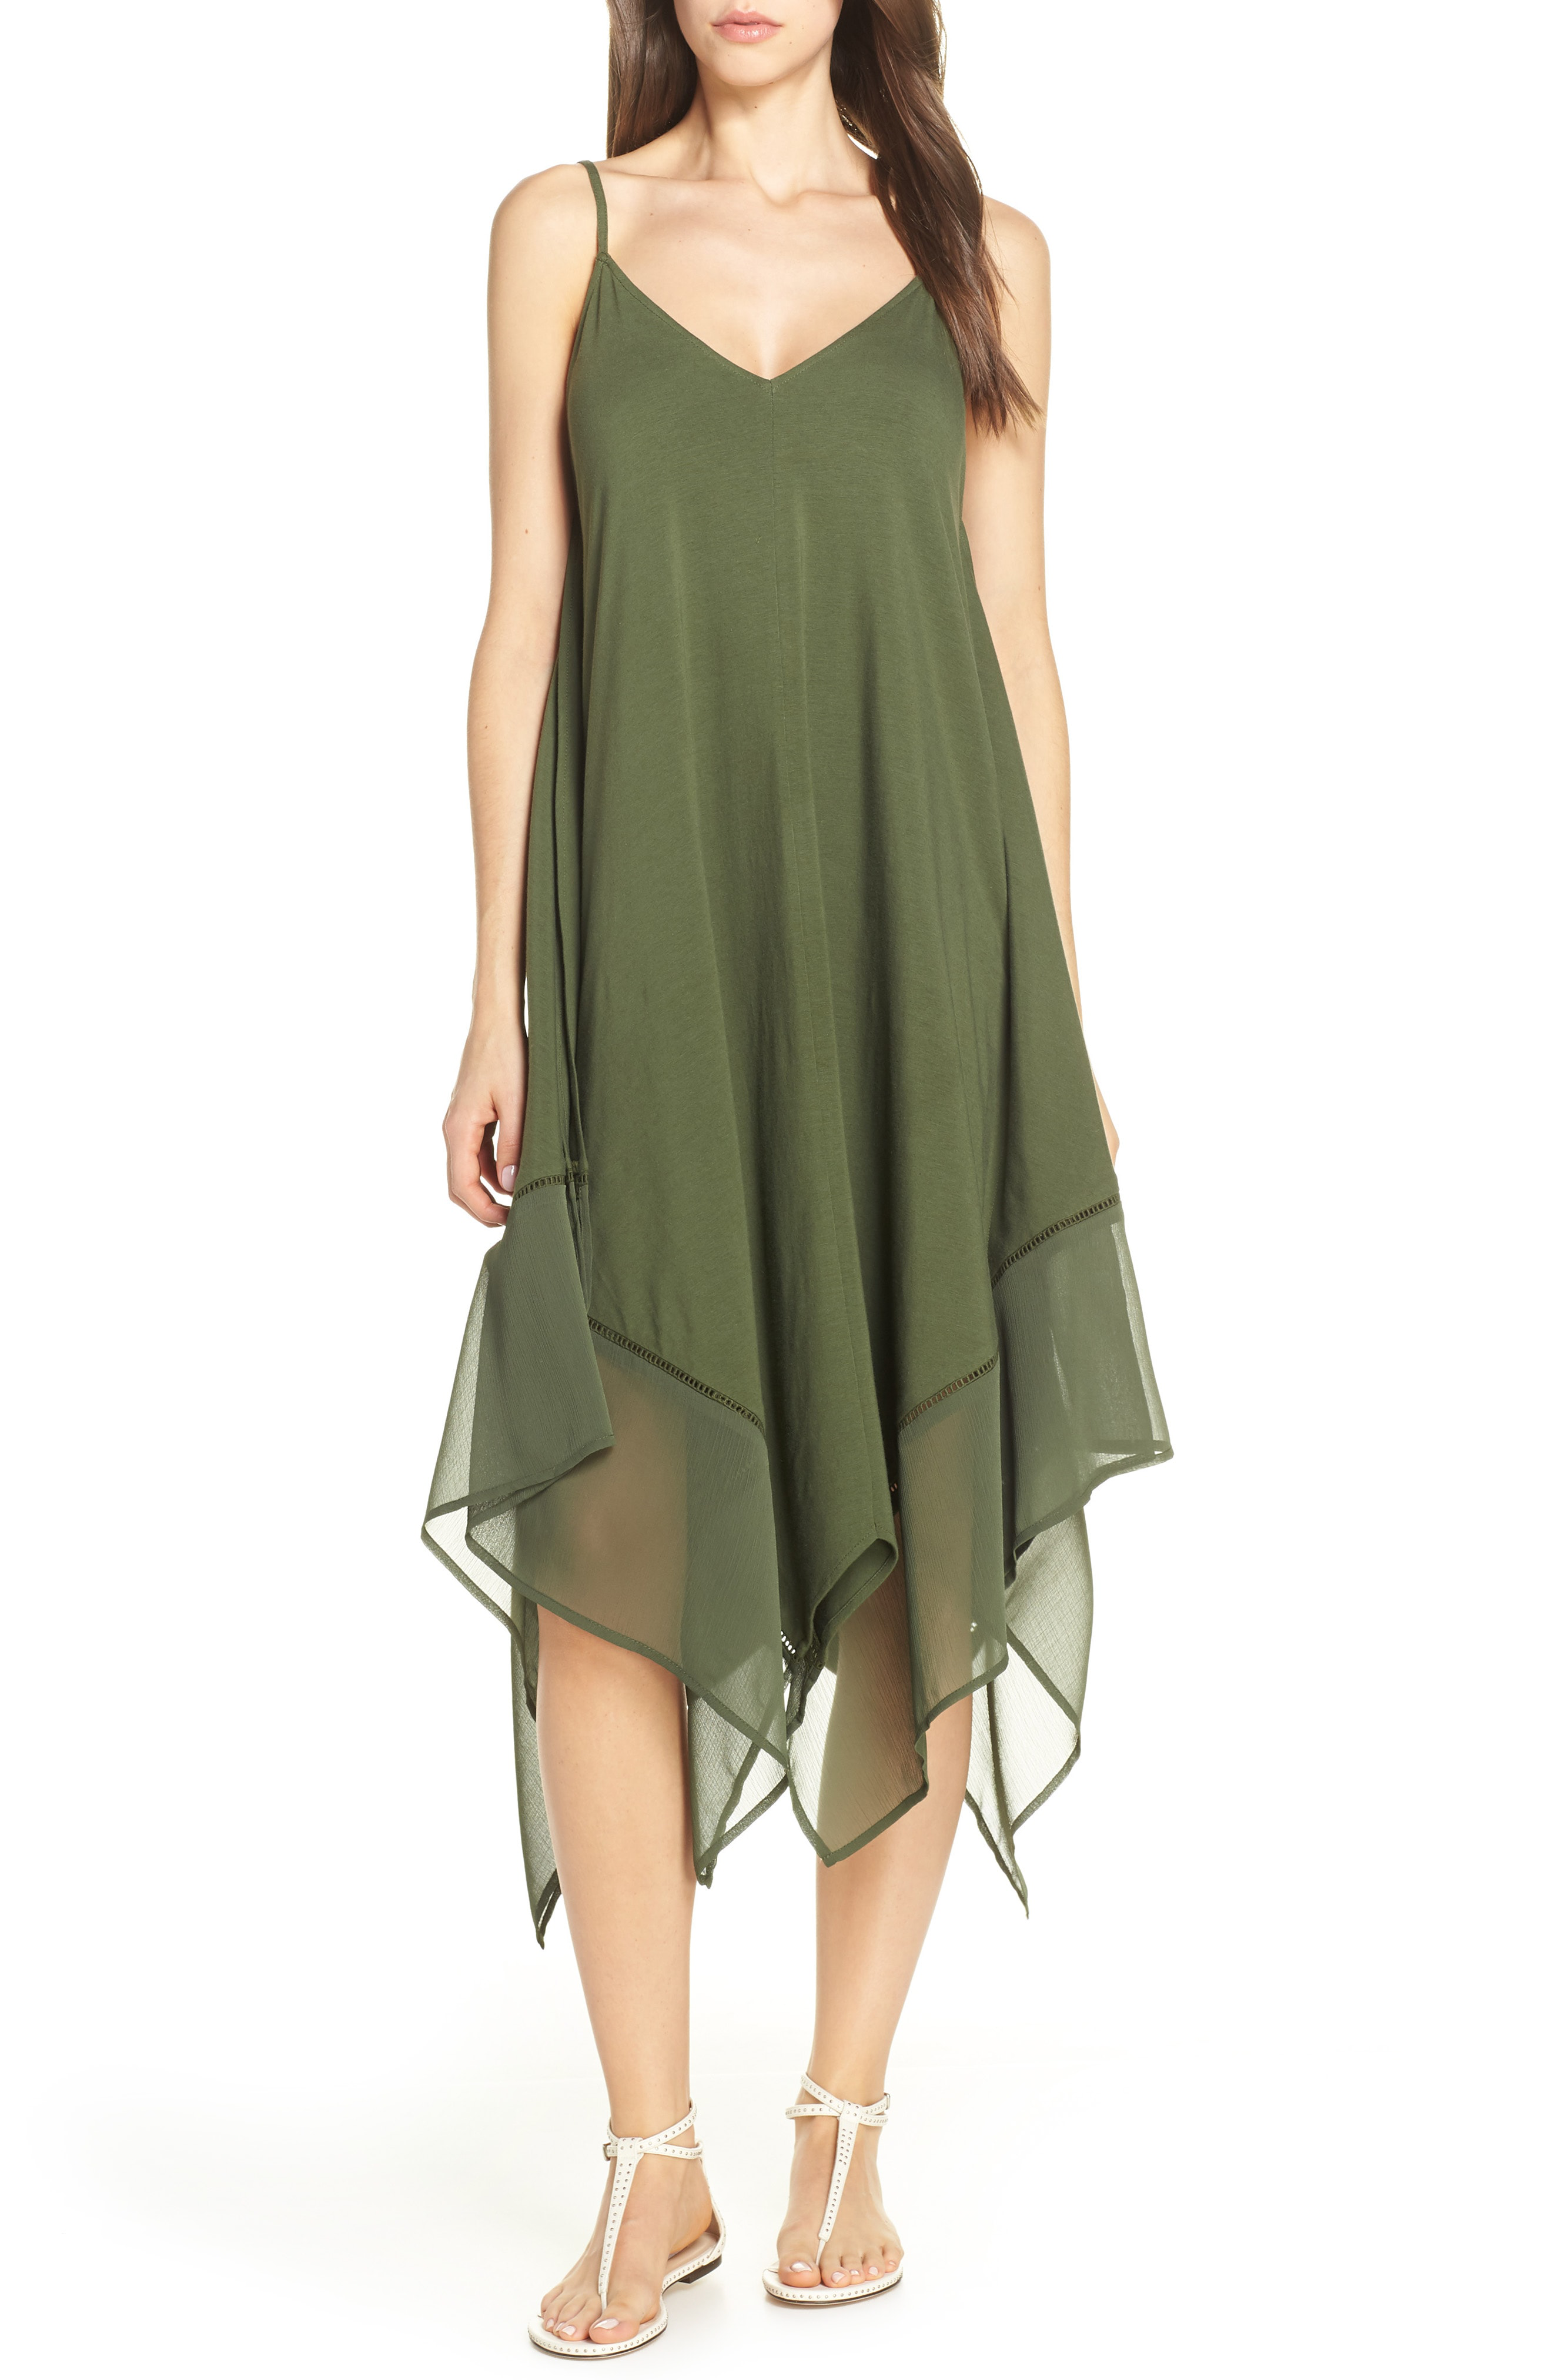 30e9128672 Layer over your swimsuit as a chic cover-up to take you from the beach to  boardwalk in style. Style Name  Tommy Bahama Cover-Up Scarf Dress.